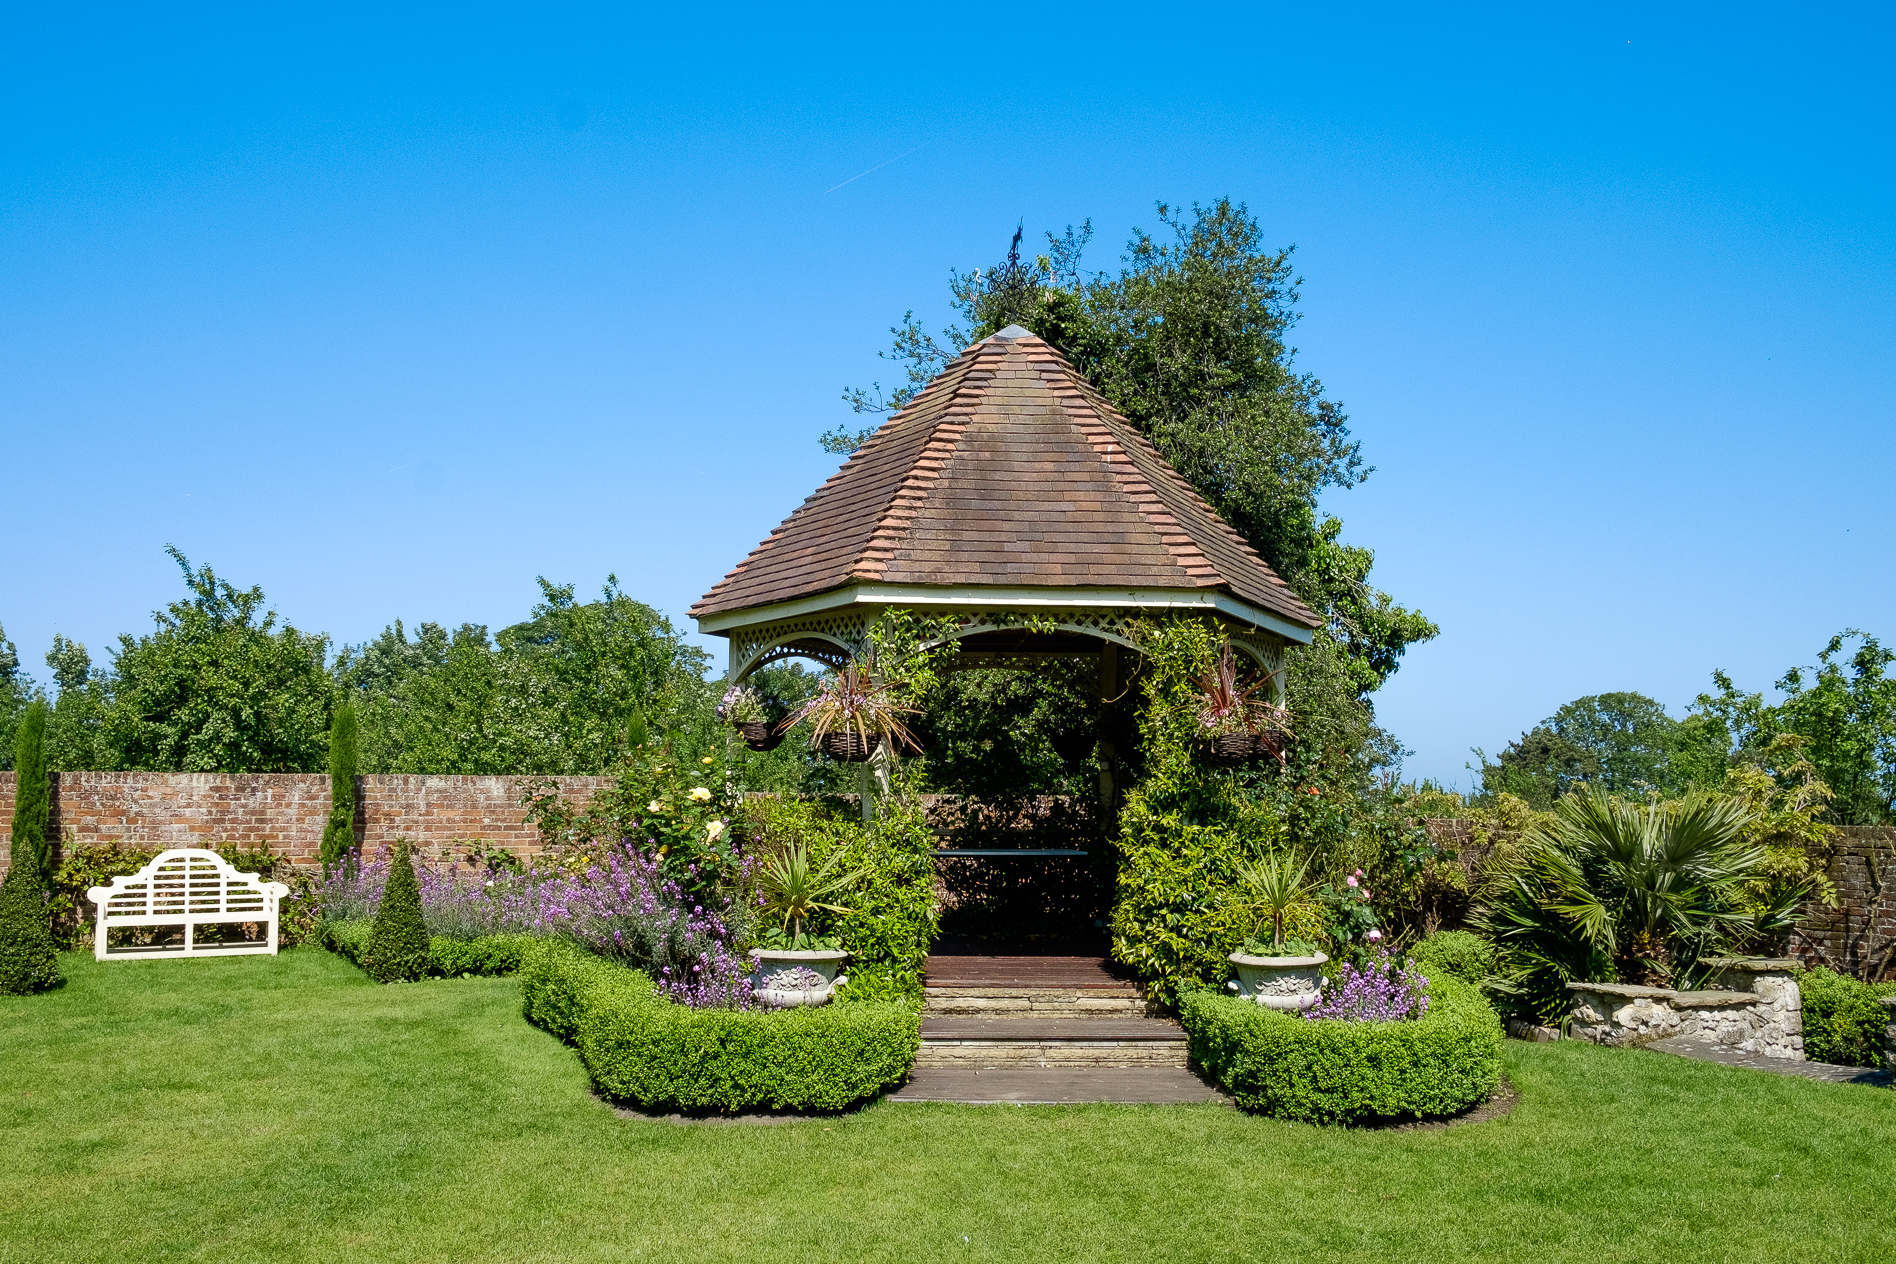 The gazebo at The Knowle Country House by Kent wedding photographers, Oakhouse Photography.